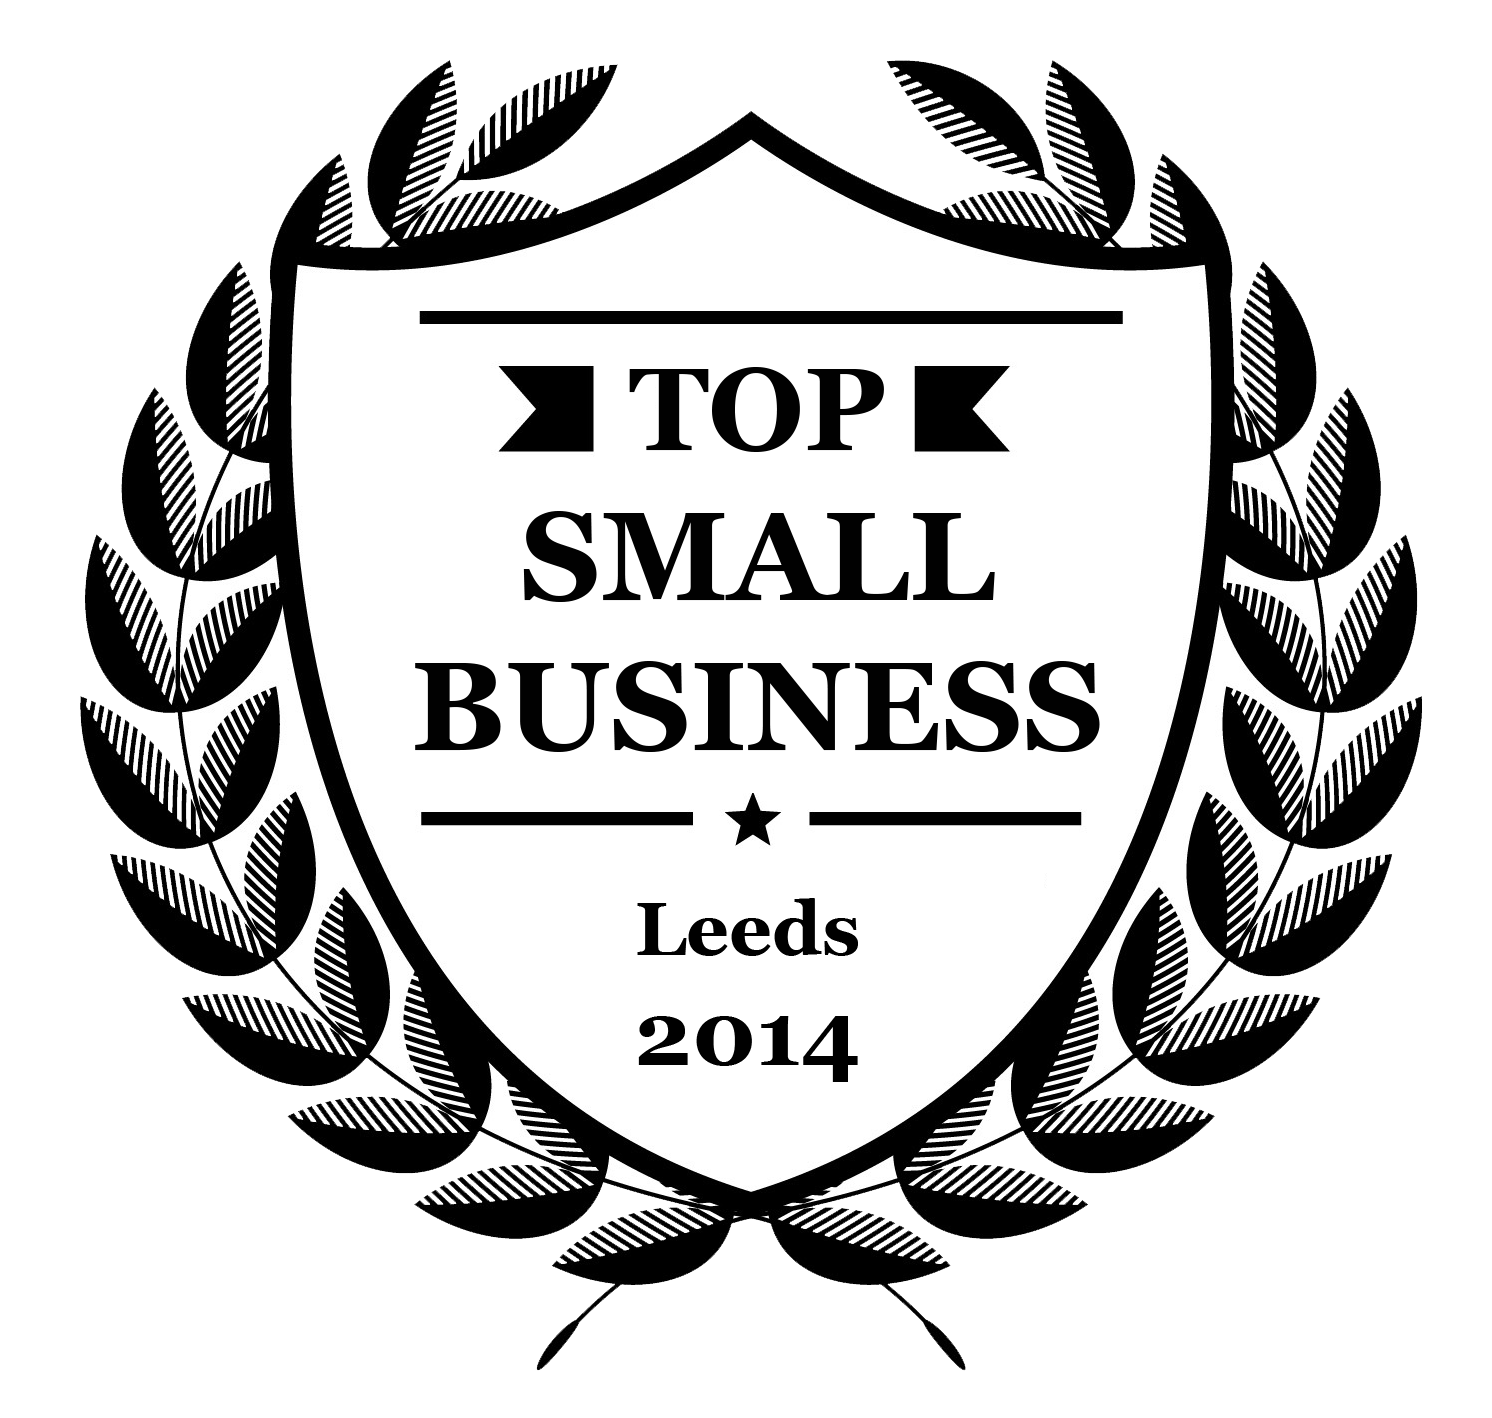 Sands Wealth Management - Top Small Business in Leeds 2014